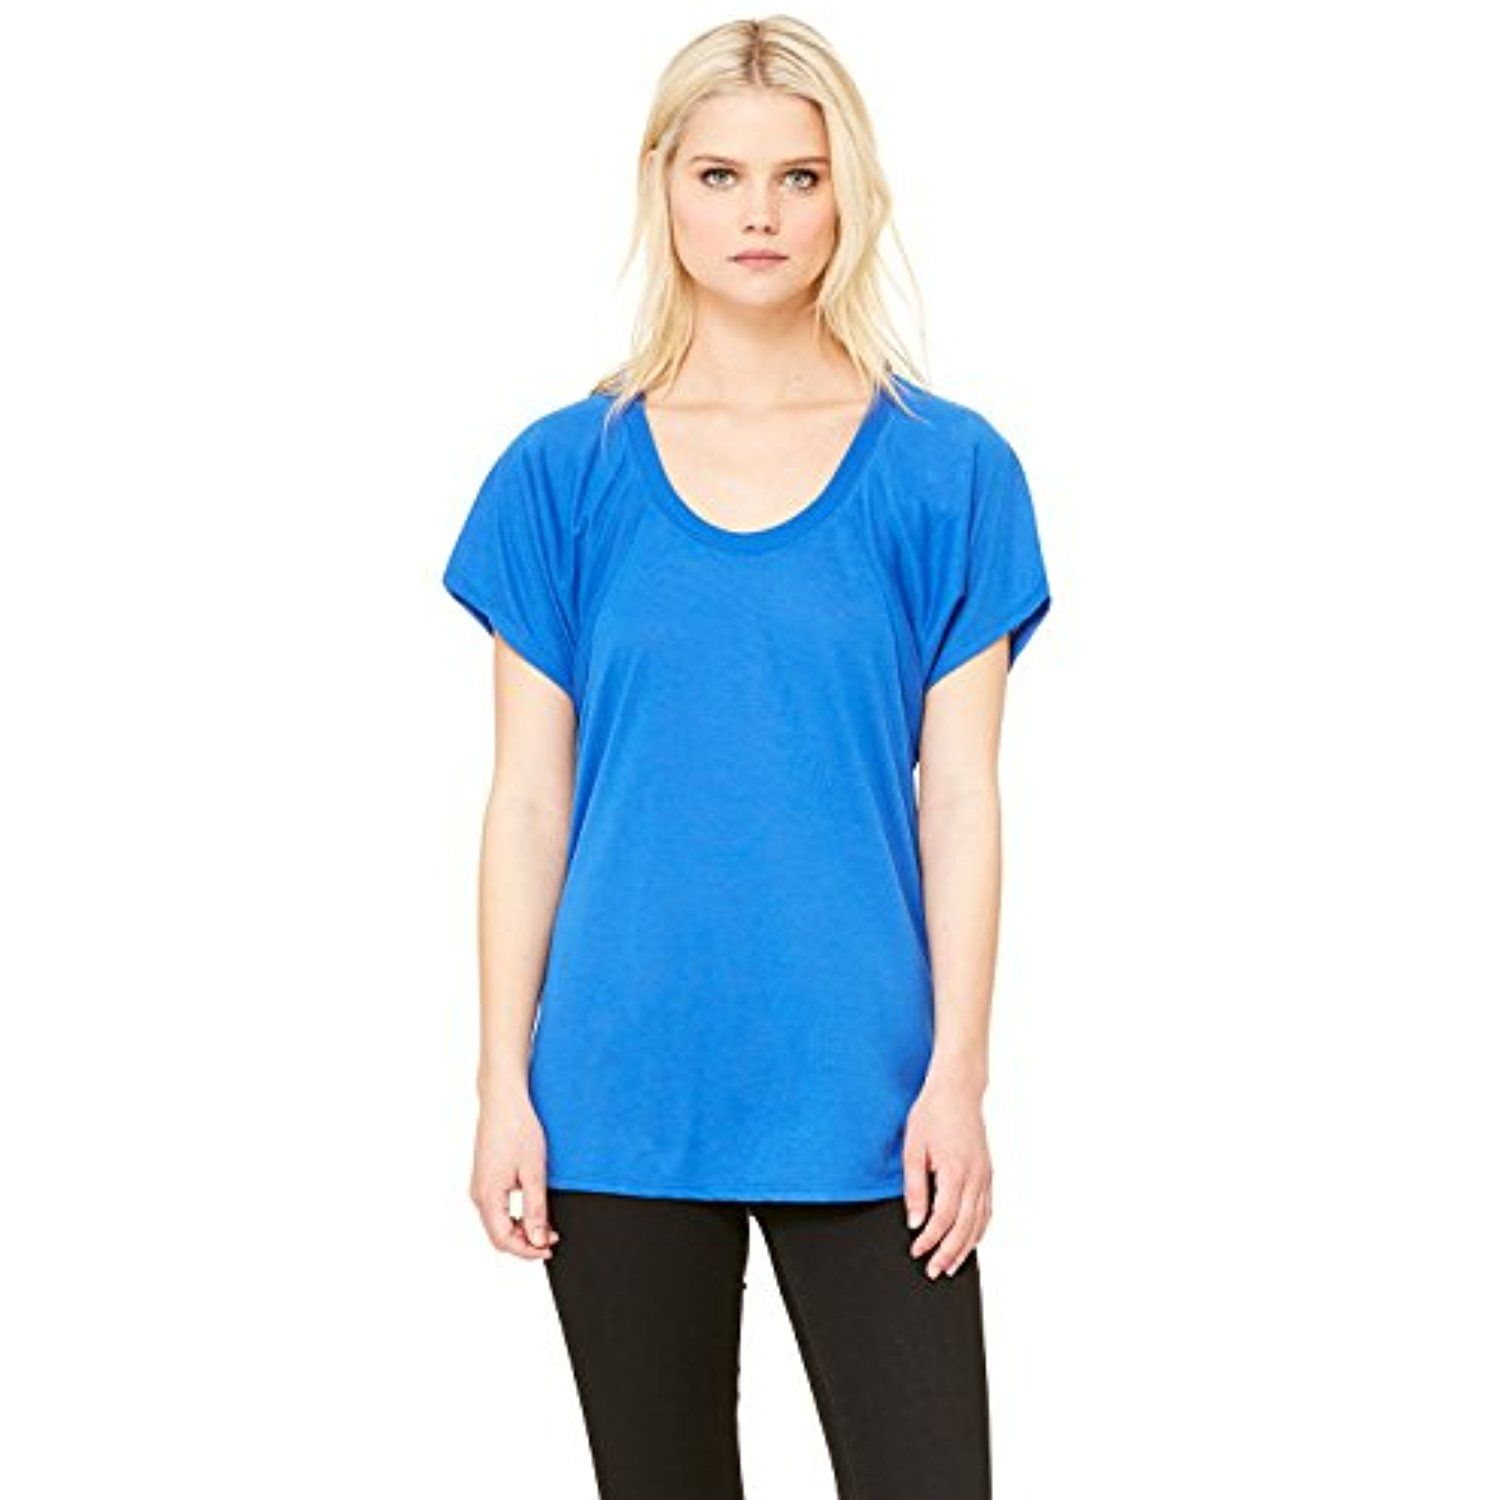 Zara Yoga Studio |LA| Women's Flowy Raglan Tee >>> Visit the image link more details. (This is an affiliate link) #Clothing